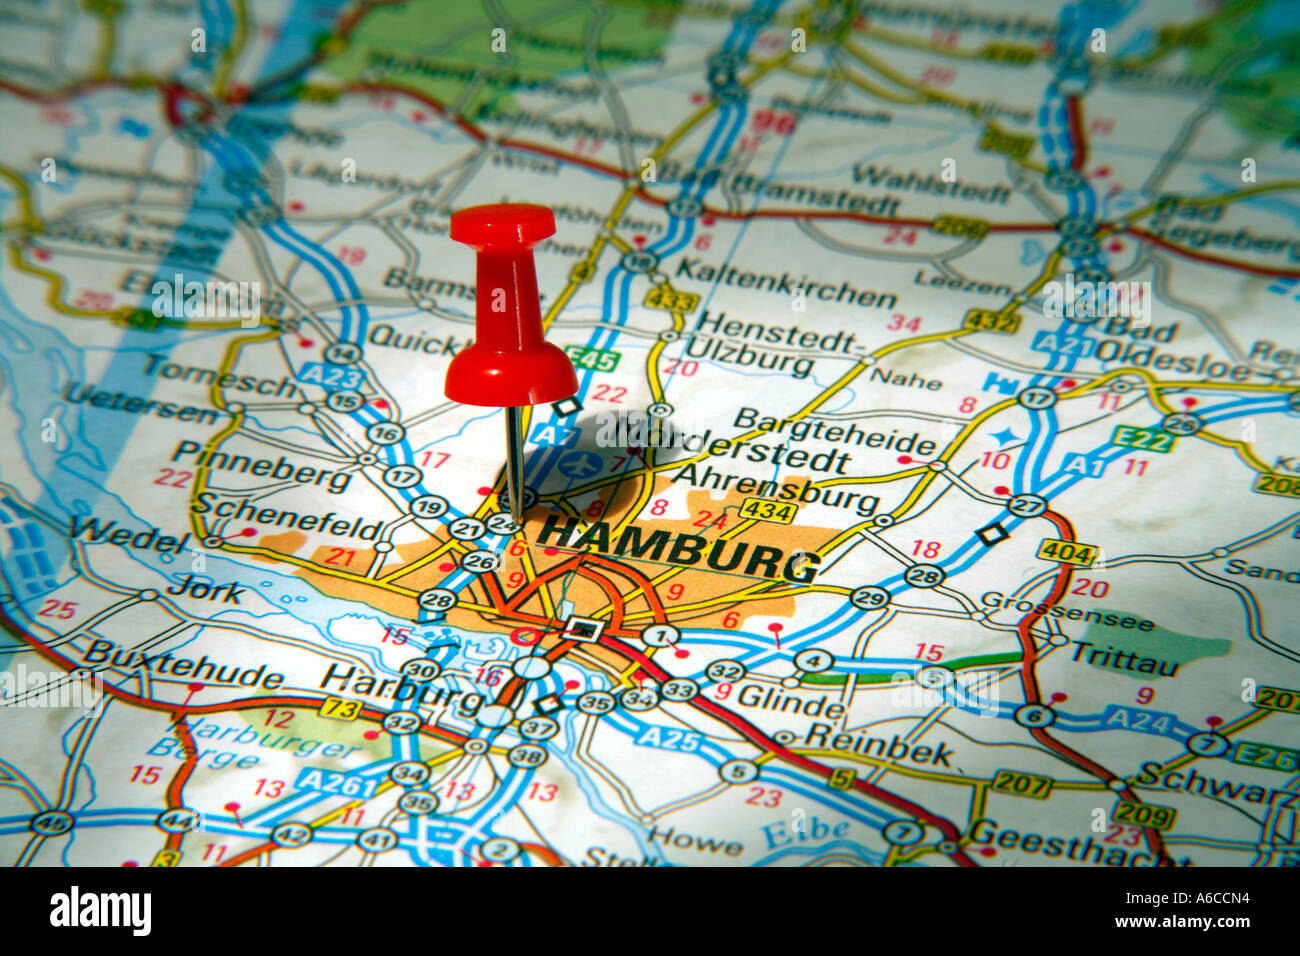 Map Pin pointing to Hamburg , Germany on a road map Stock ...